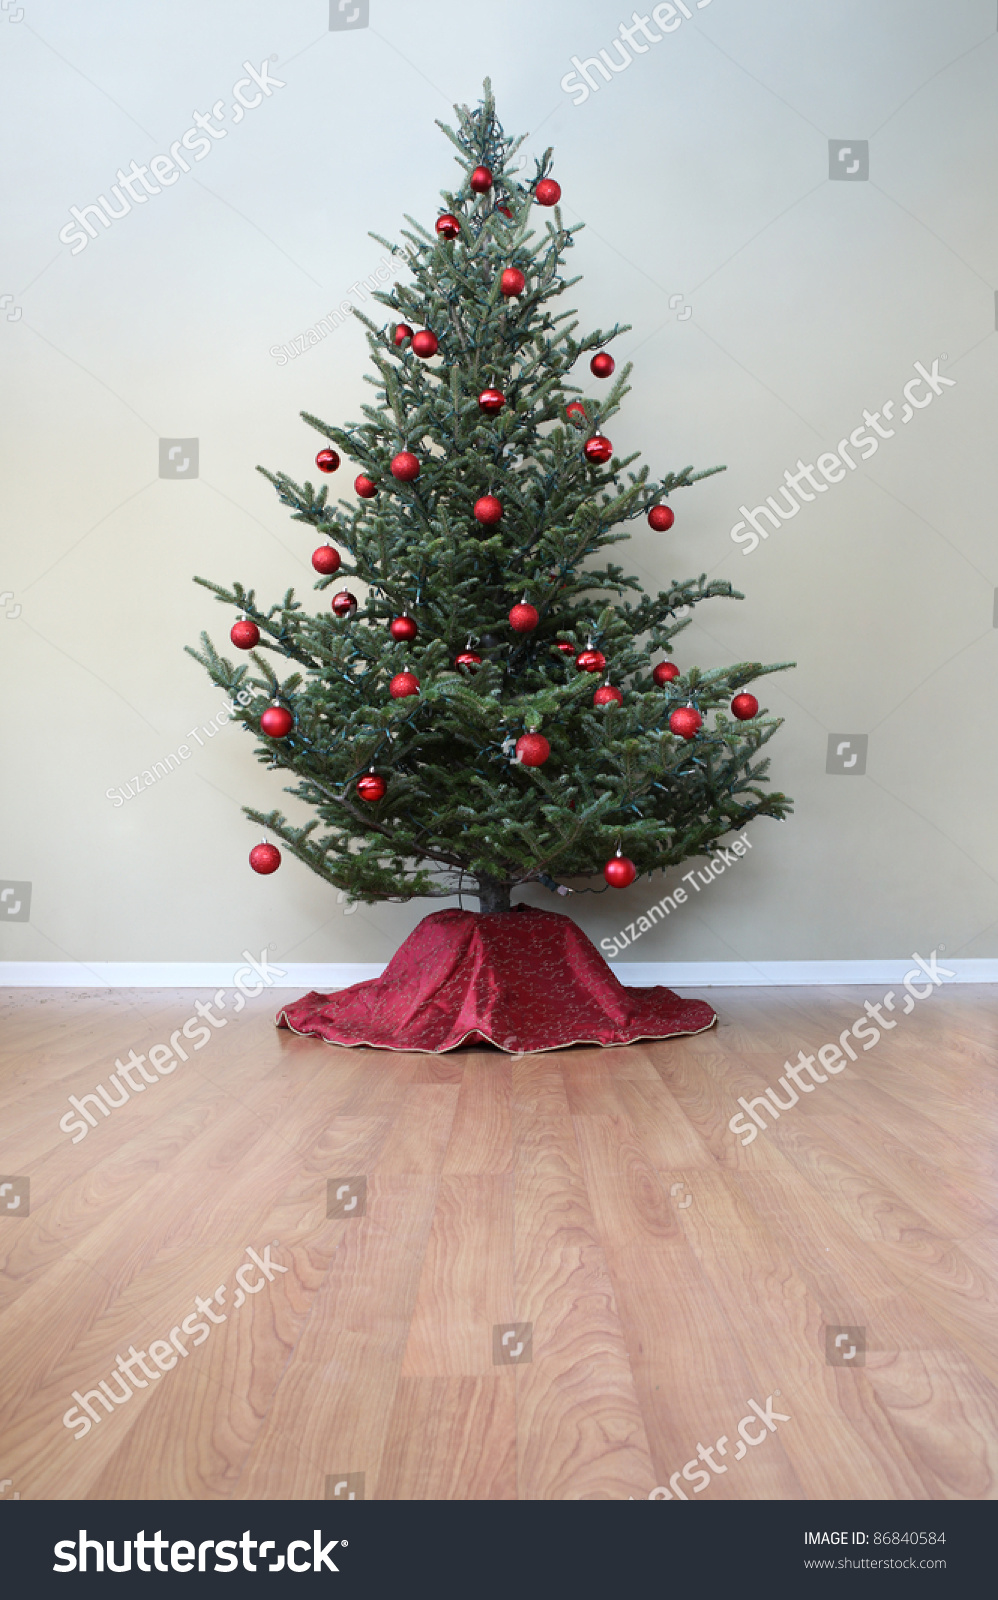 Christmas tree red ball ornaments lights stock photo